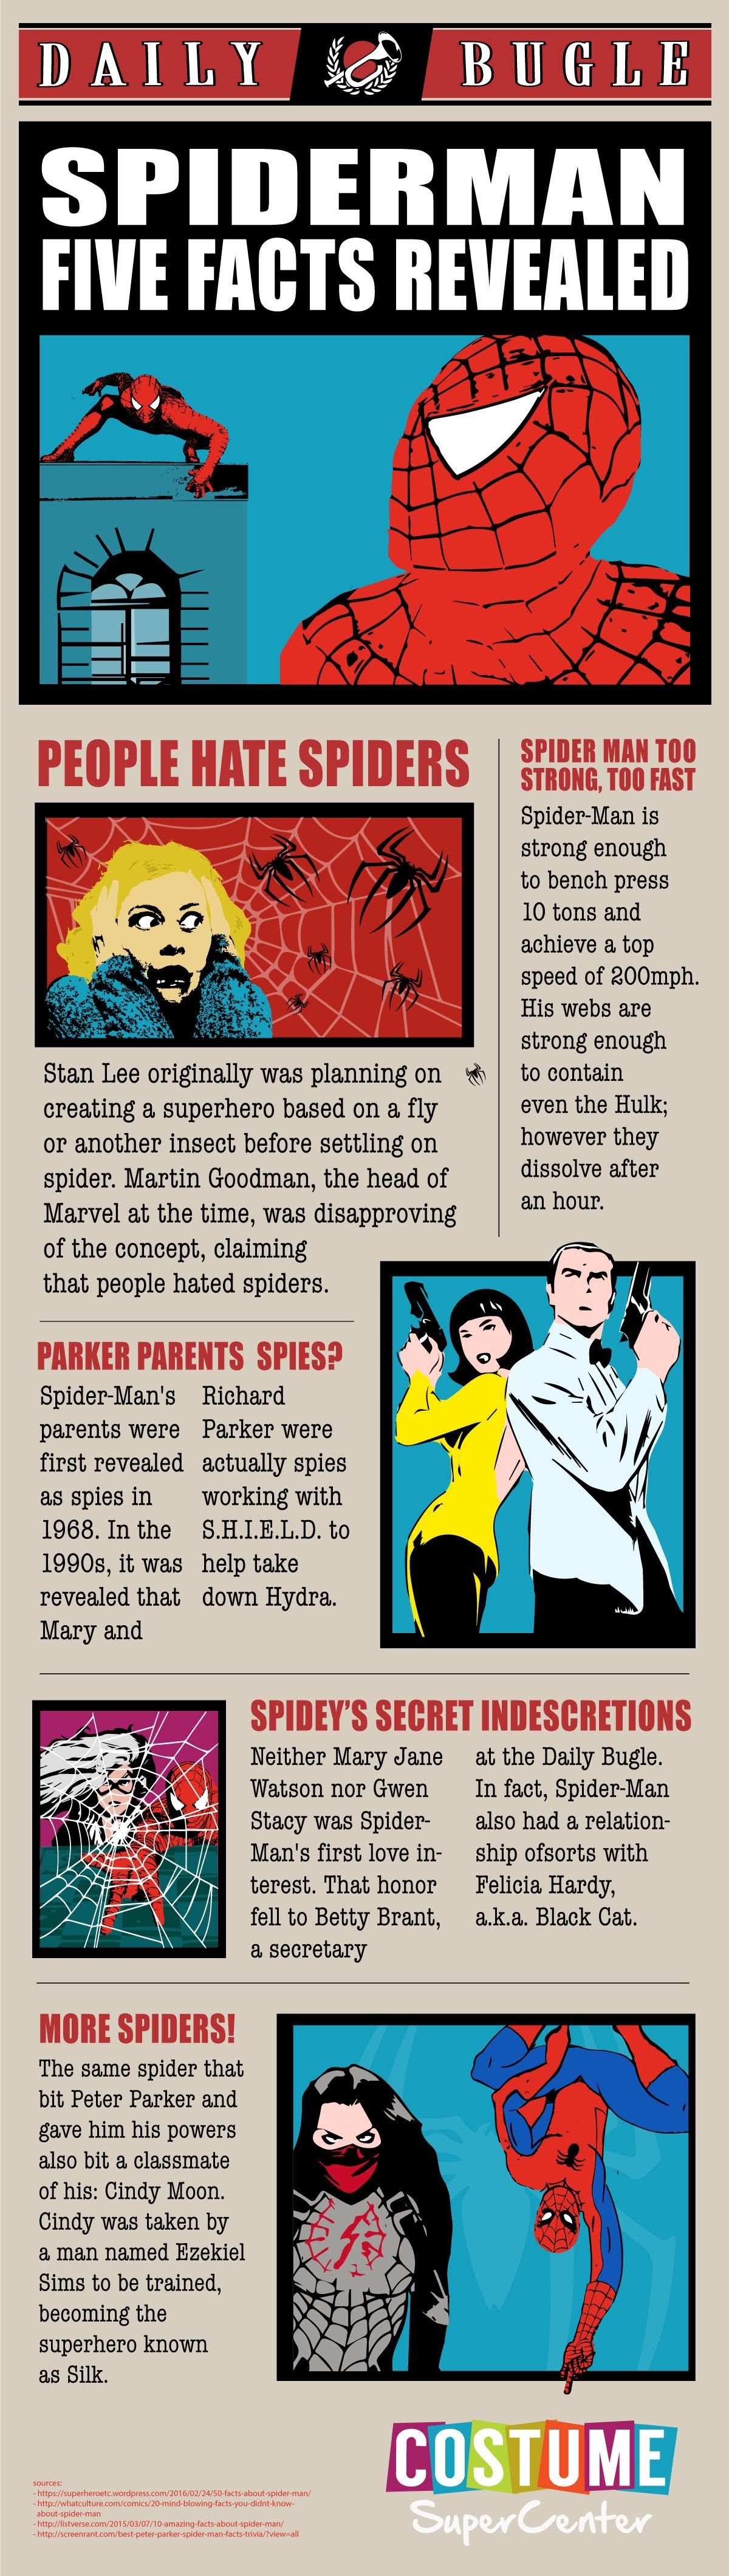 Spider Man Five Facts Revealed #Infographic